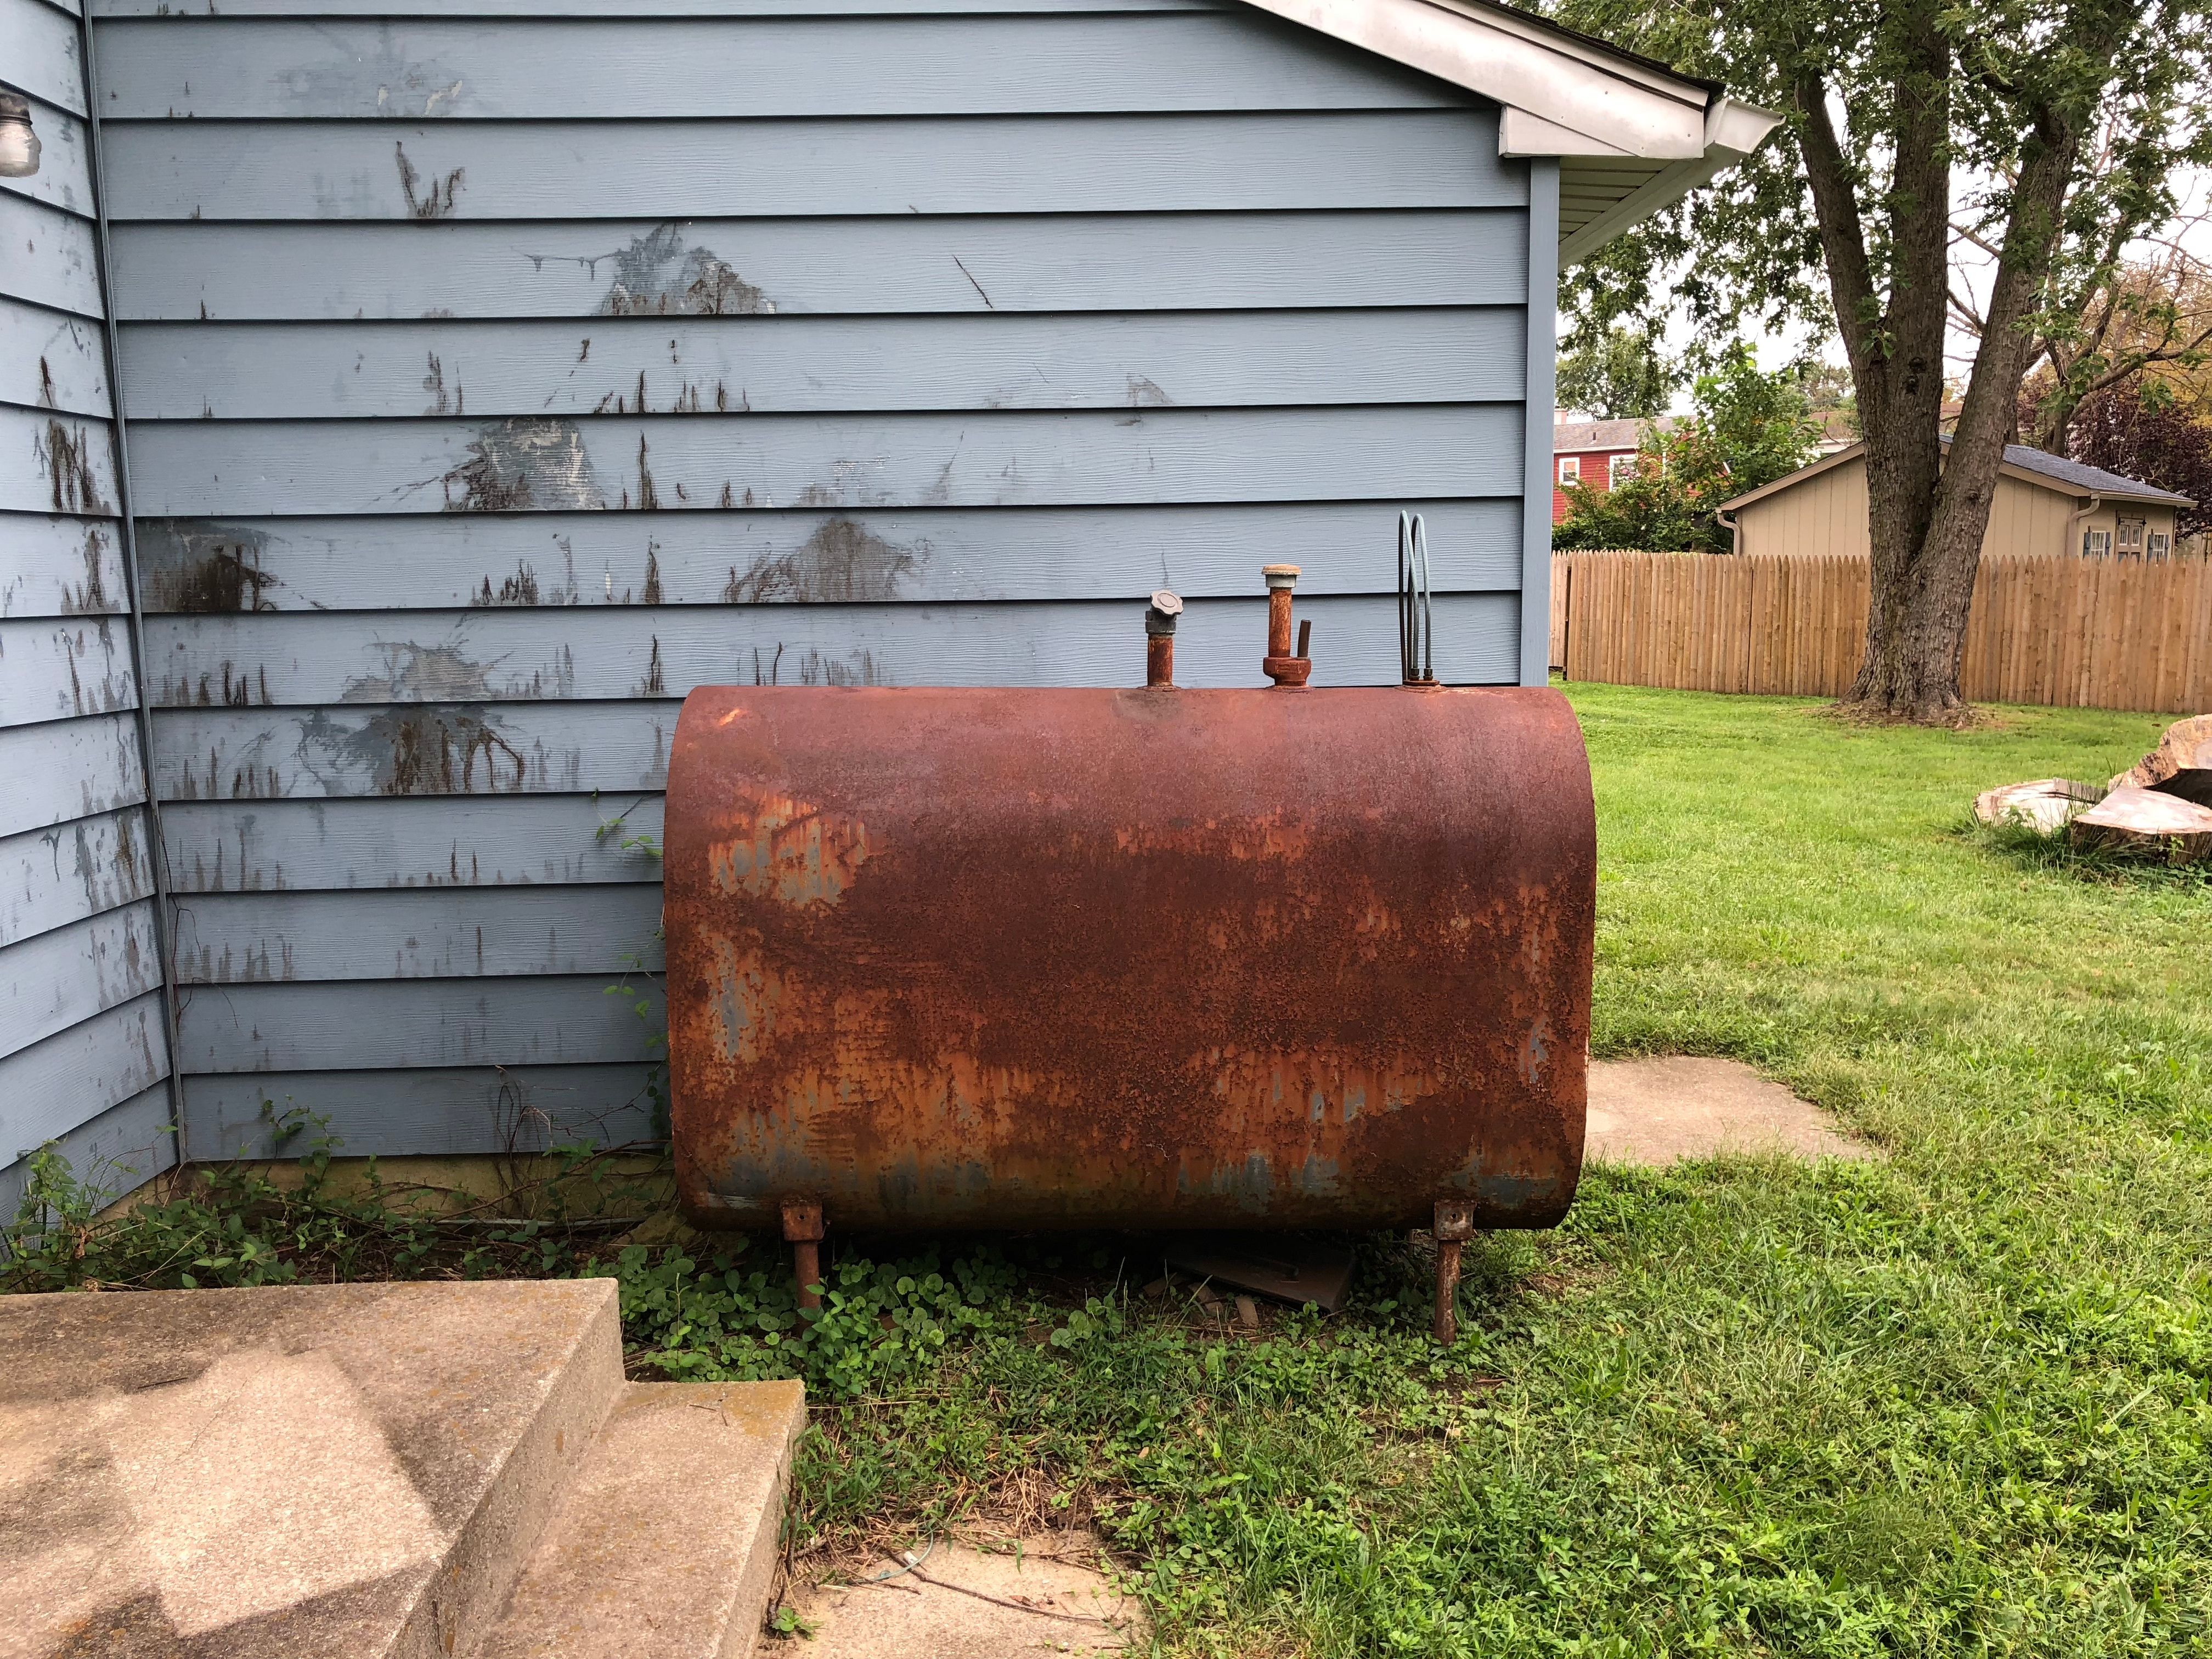 Above ground oil tank removal